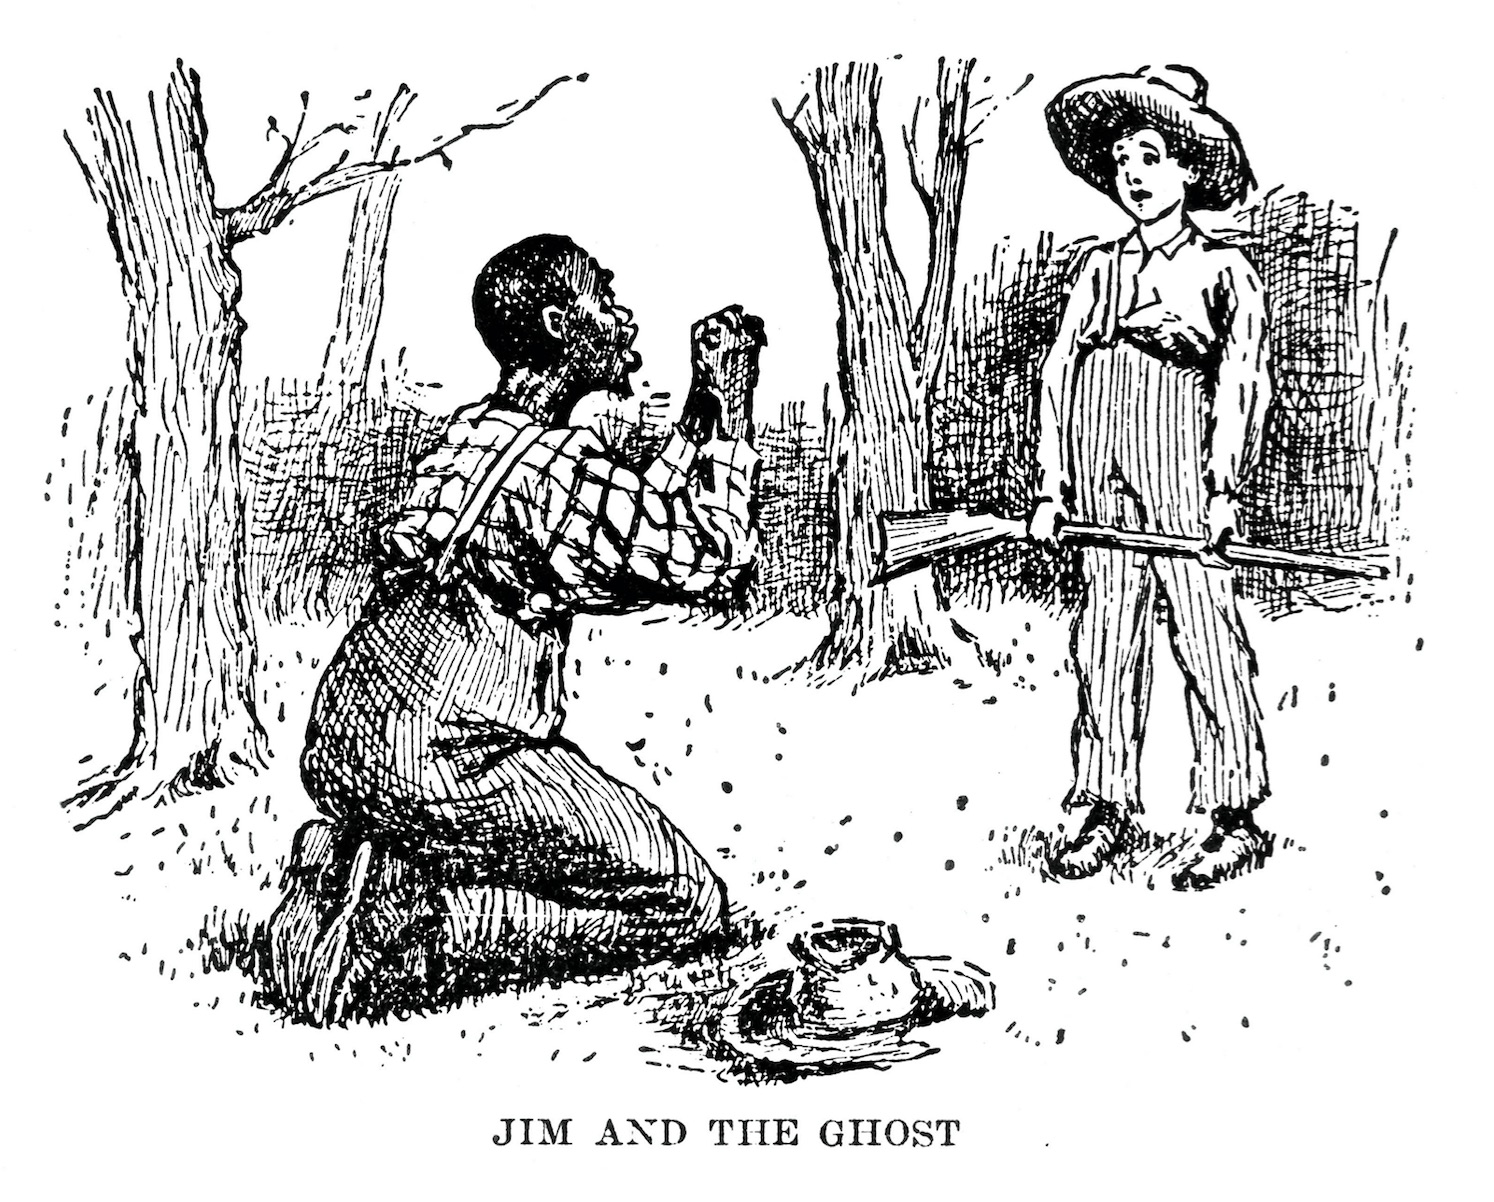 racism in huckleberry finn The adventures of huckleberry finn is not a racist novel, nor is mark twain a racist author the novel was a satire on slavery and racism, that, as well as raising social awareness, was also one of the best american novels of all time.